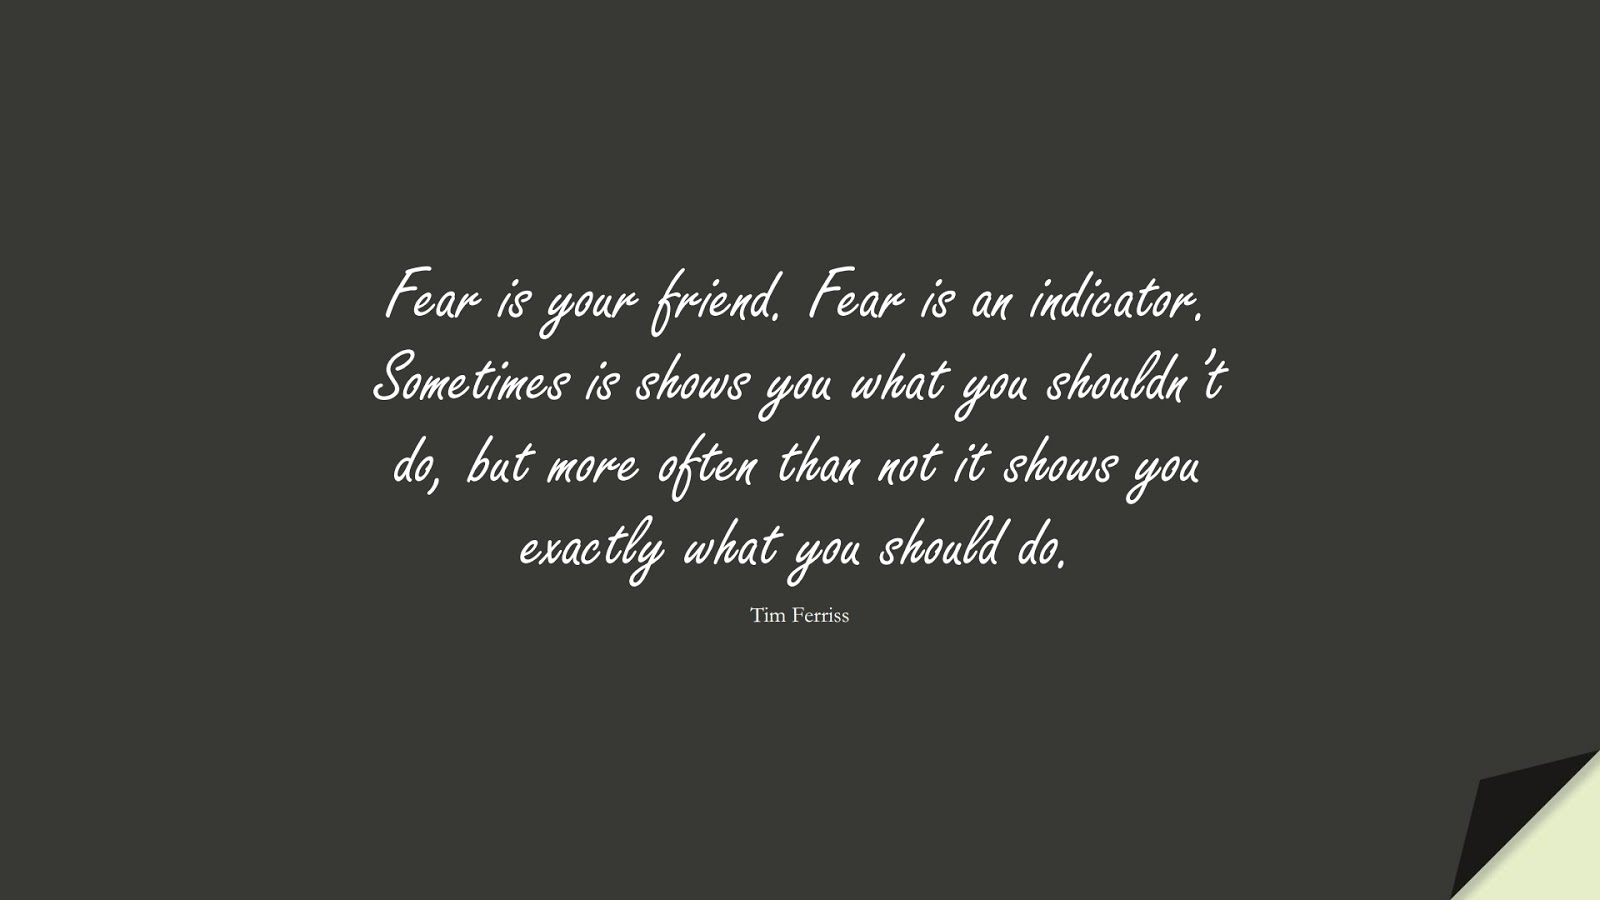 Fear is your friend. Fear is an indicator. Sometimes is shows you what you shouldn't do, but more often than not it shows you exactly what you should do. (Tim Ferriss);  #TimFerrissQuotes